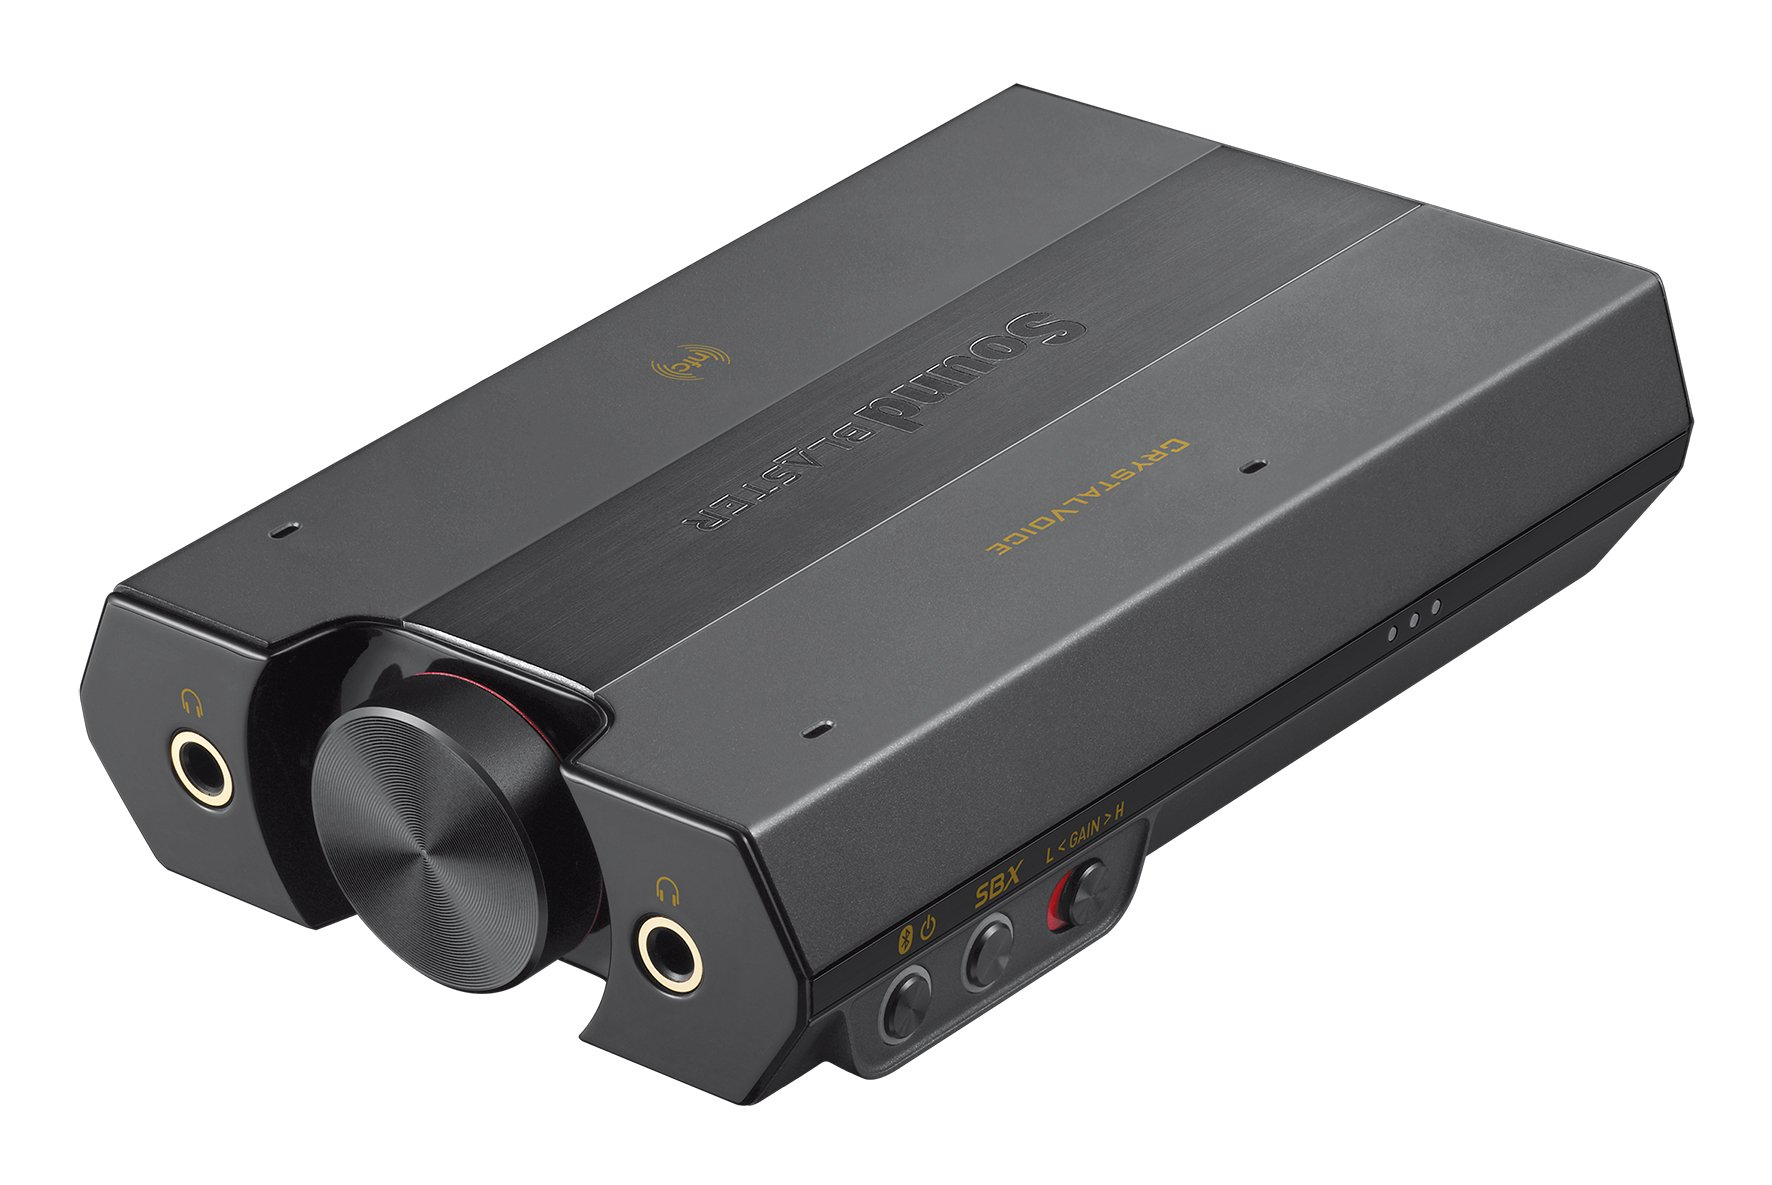 Creative Sound Blaster E5 High-Resolution USB DAC 600 ohm Headphone Amplifier with Bluetooth